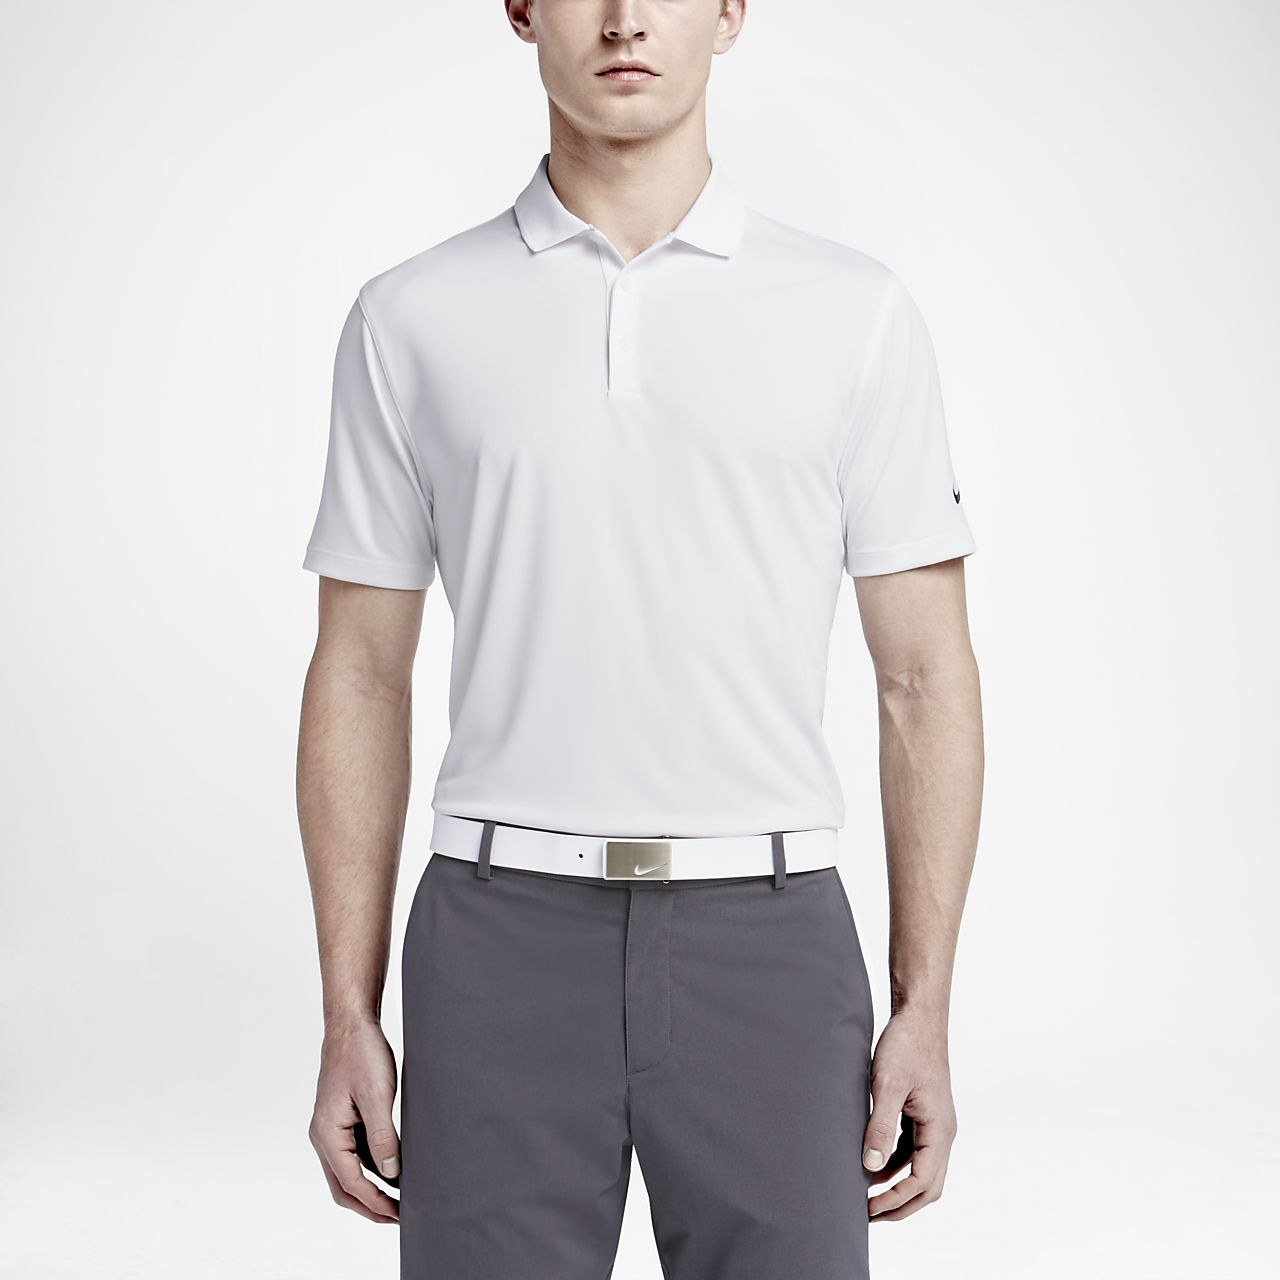 78a1090ffea4 Nike Victory Solid Men s Standard Fit Golf Polo. Nike.com IN